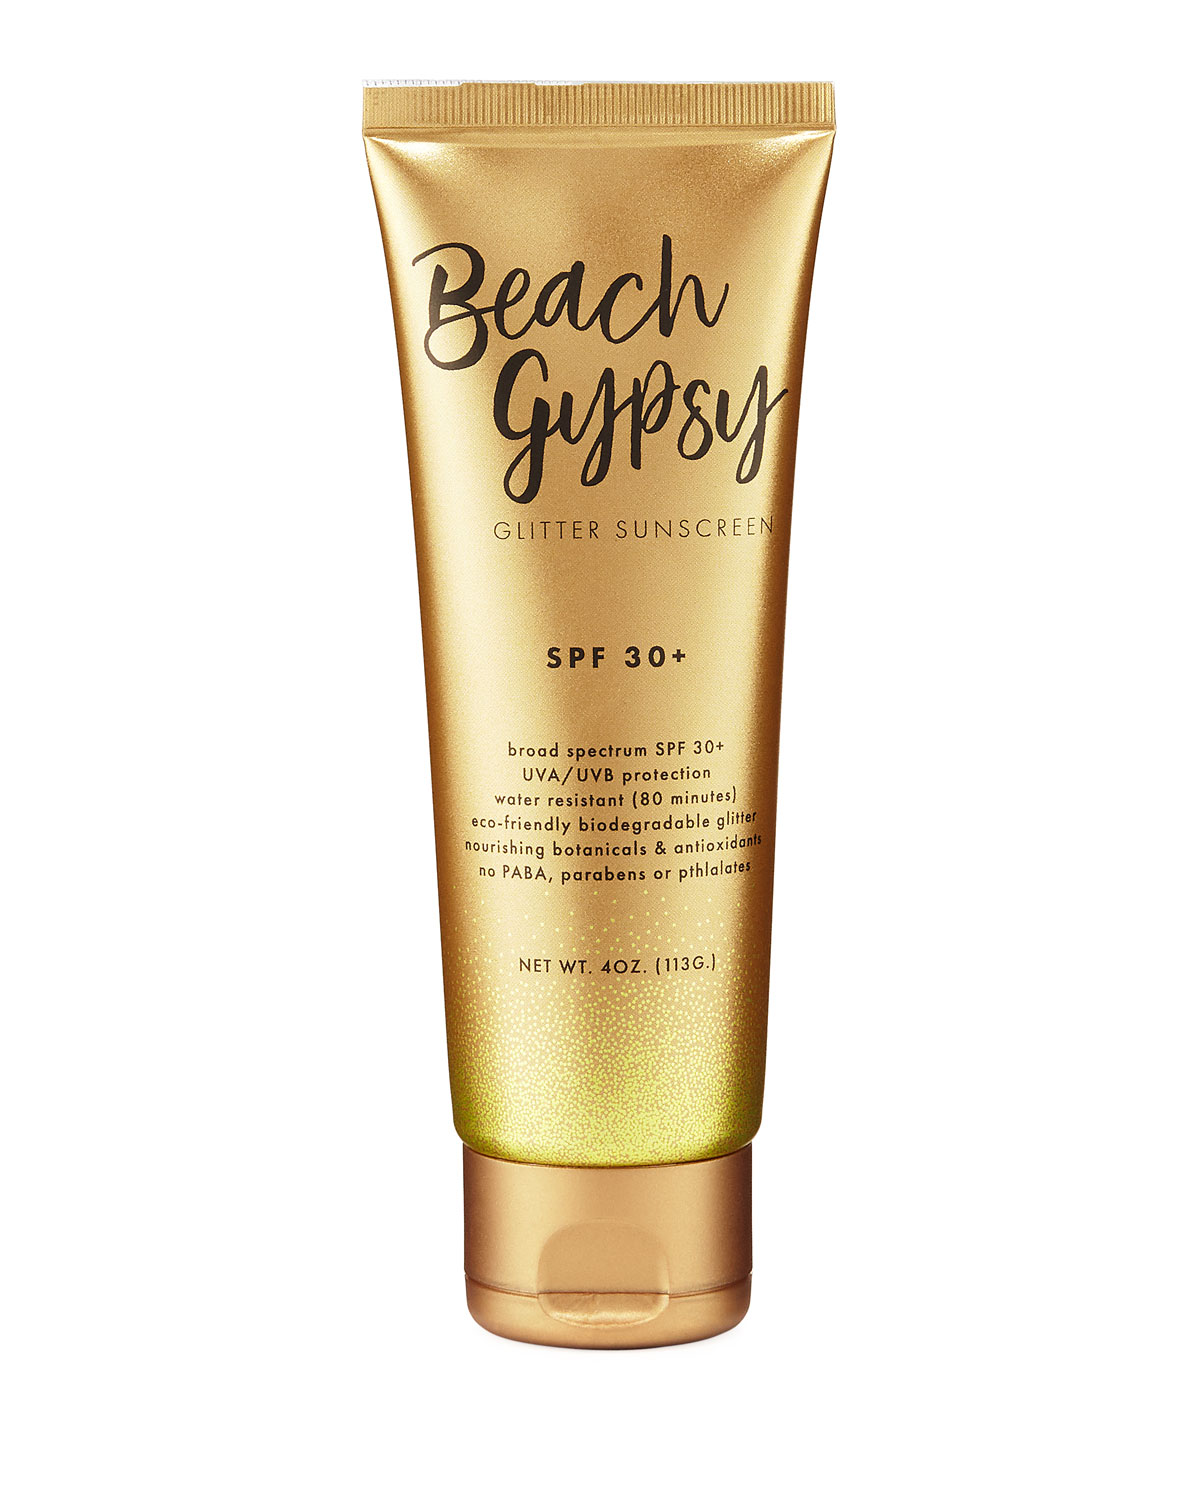 BEACH GYPSY SPF 30+ GLITTER SUNSCREEN